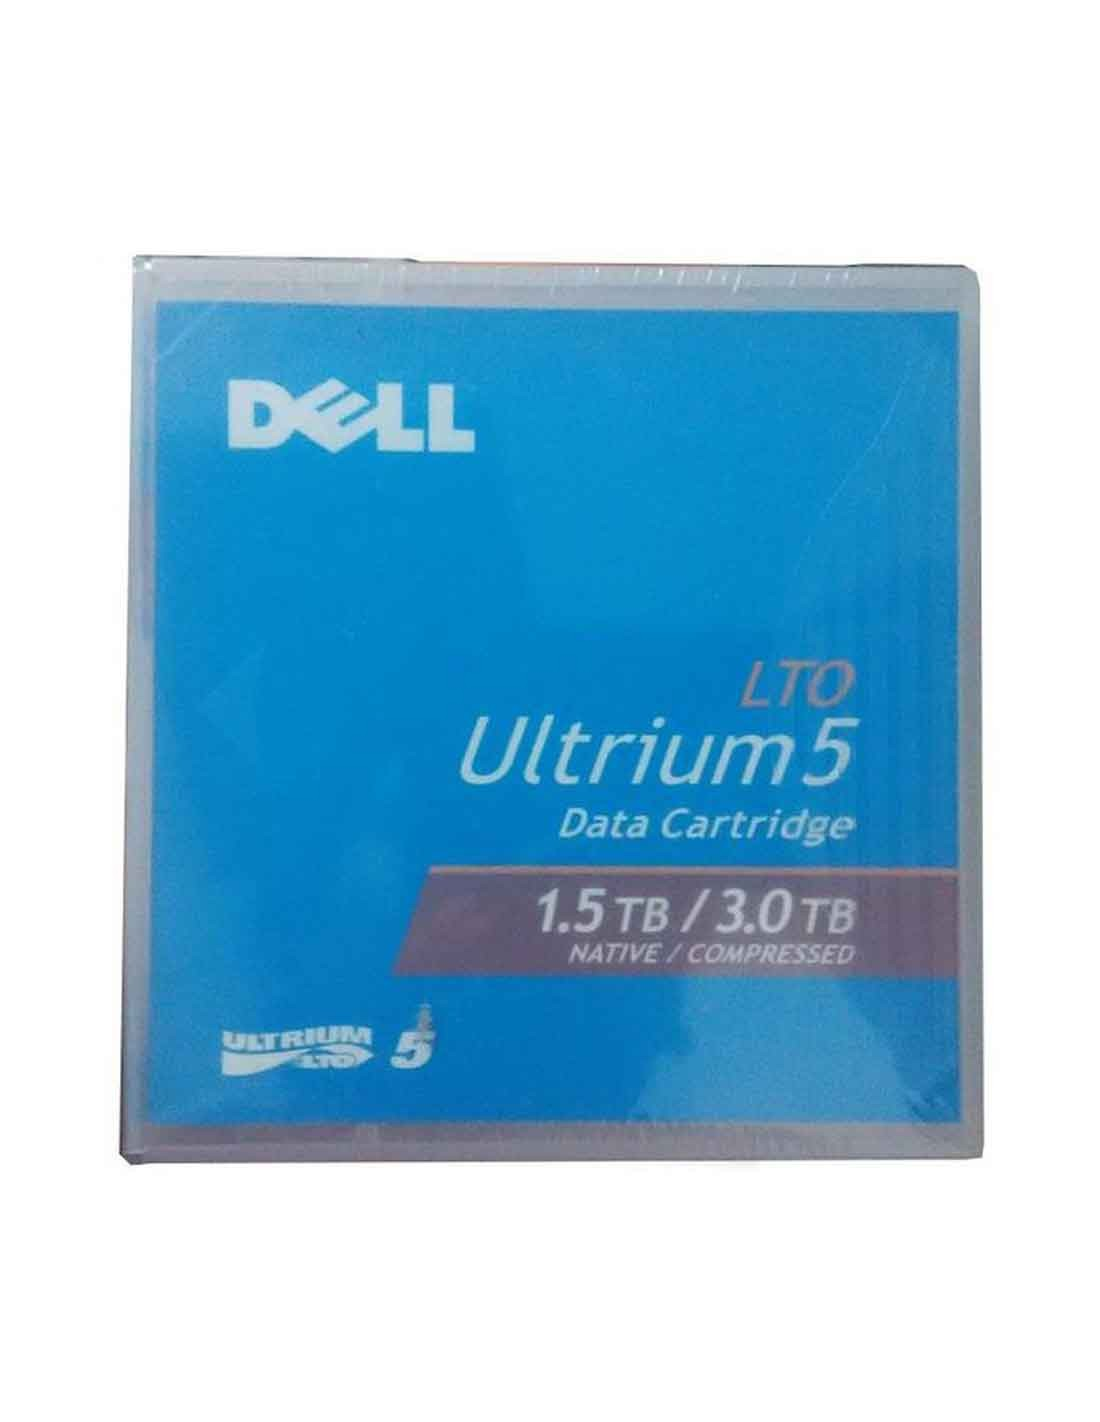 Dell LTO5 Tape Cartridge 5-pack (Kit) at a cheap price and fast free delivery in Dubai